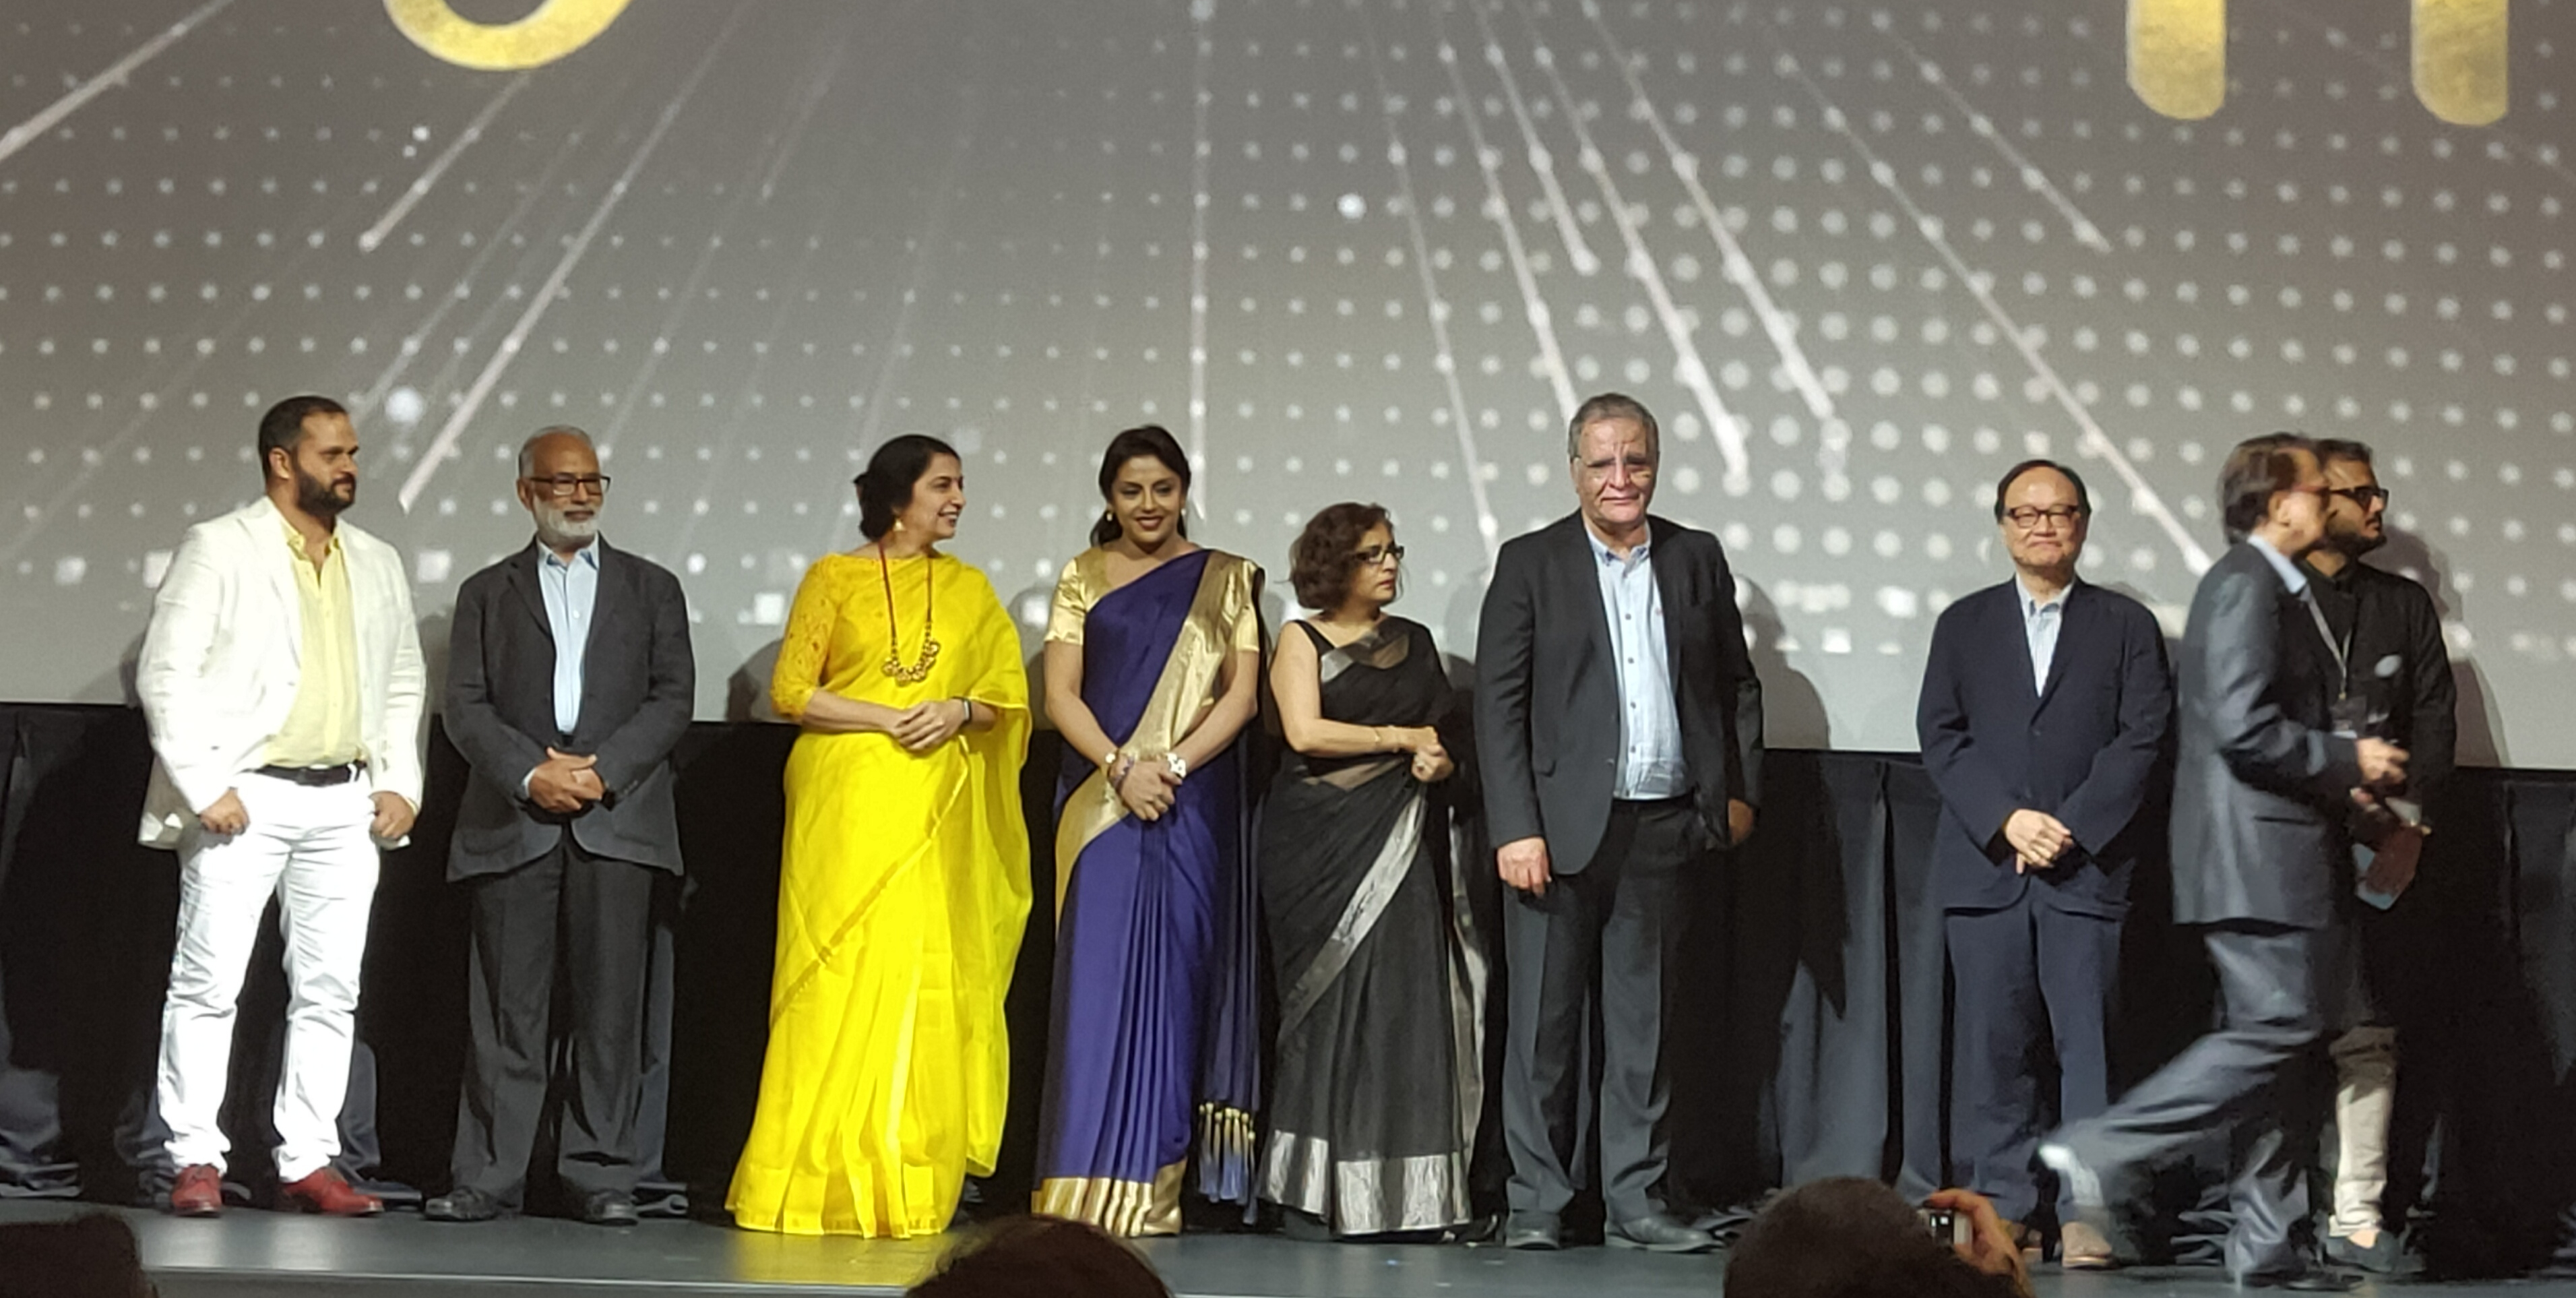 Awards ceremony at the 2019 Singapore South Asian International Film Festival. Photo courtesy: Connected to India